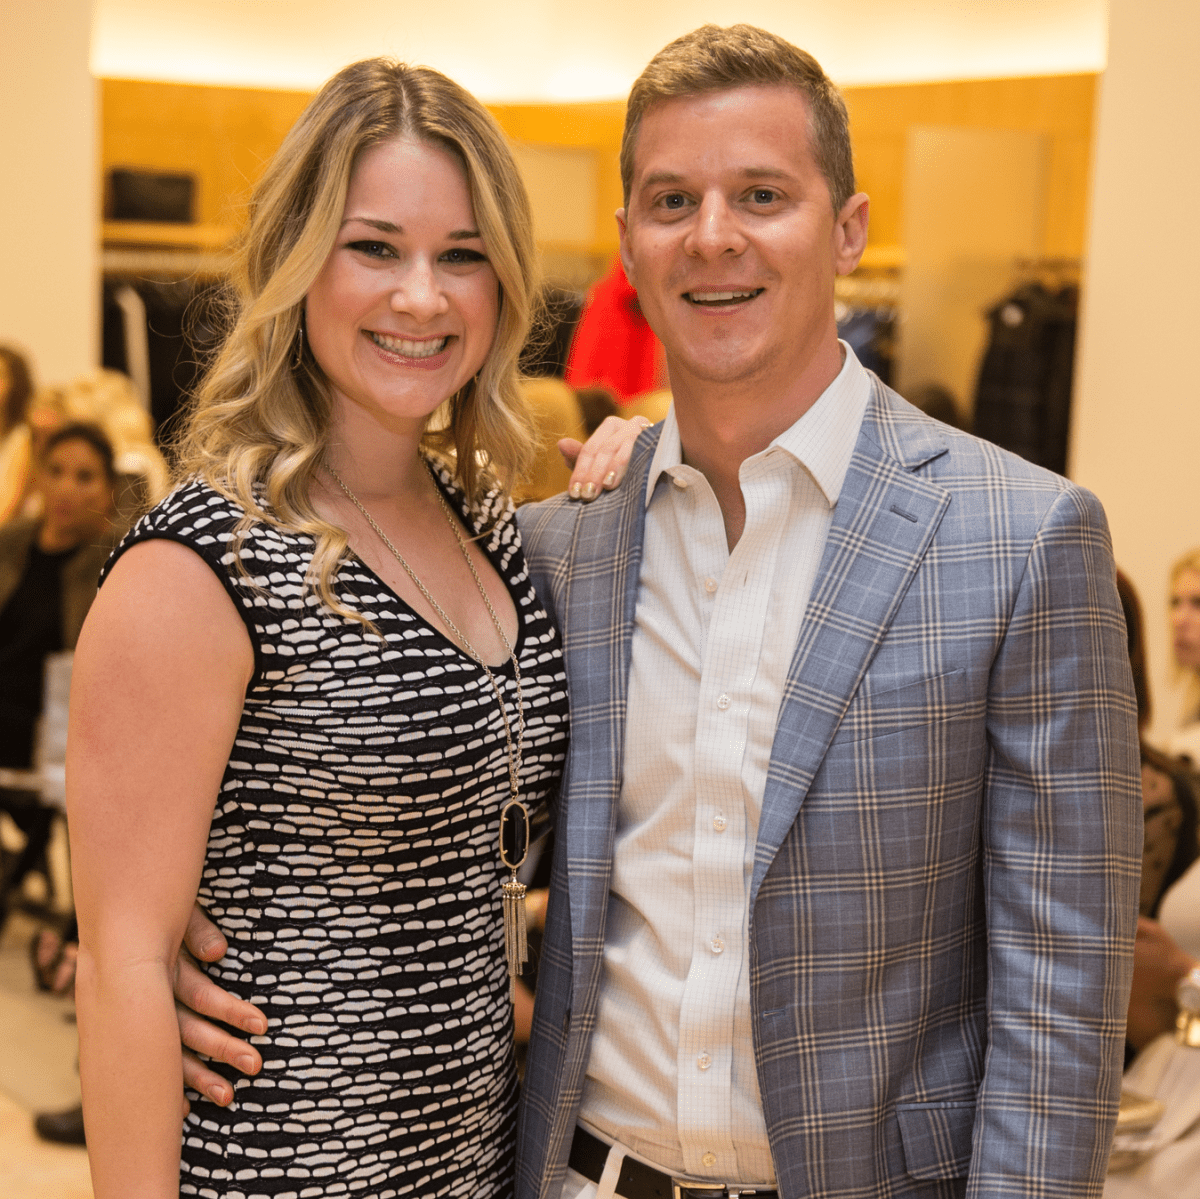 Kate and Chris Robast at Neiman Marcus Trend Event